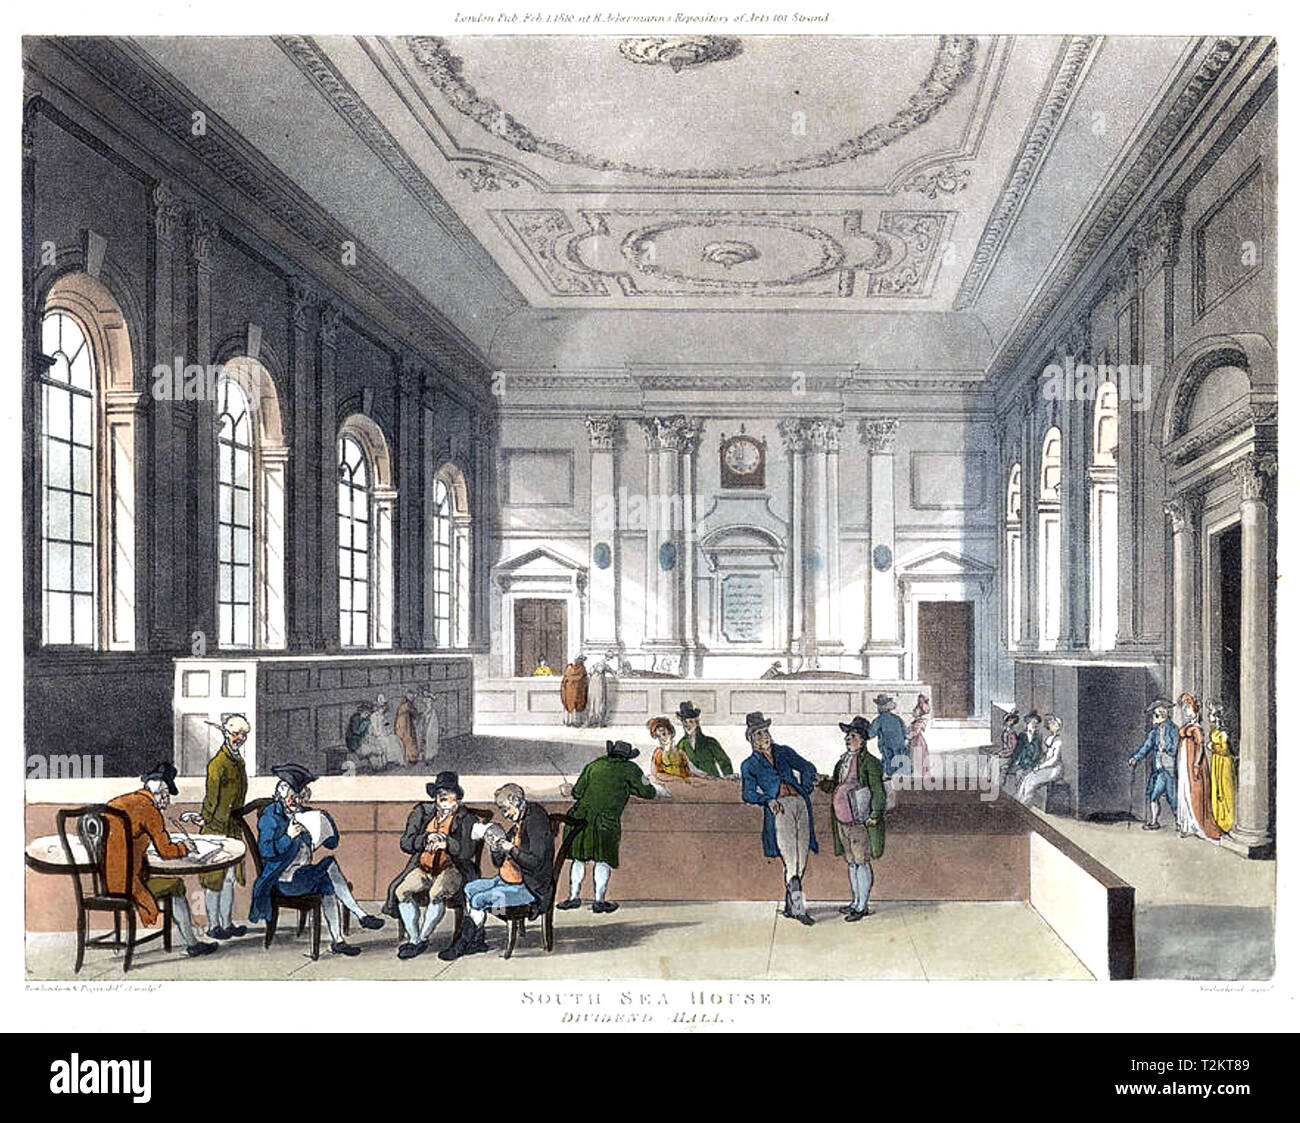 DIVIDEND HALL OF THE SOUTH SEA COMPANY in 1810 - Stock Image